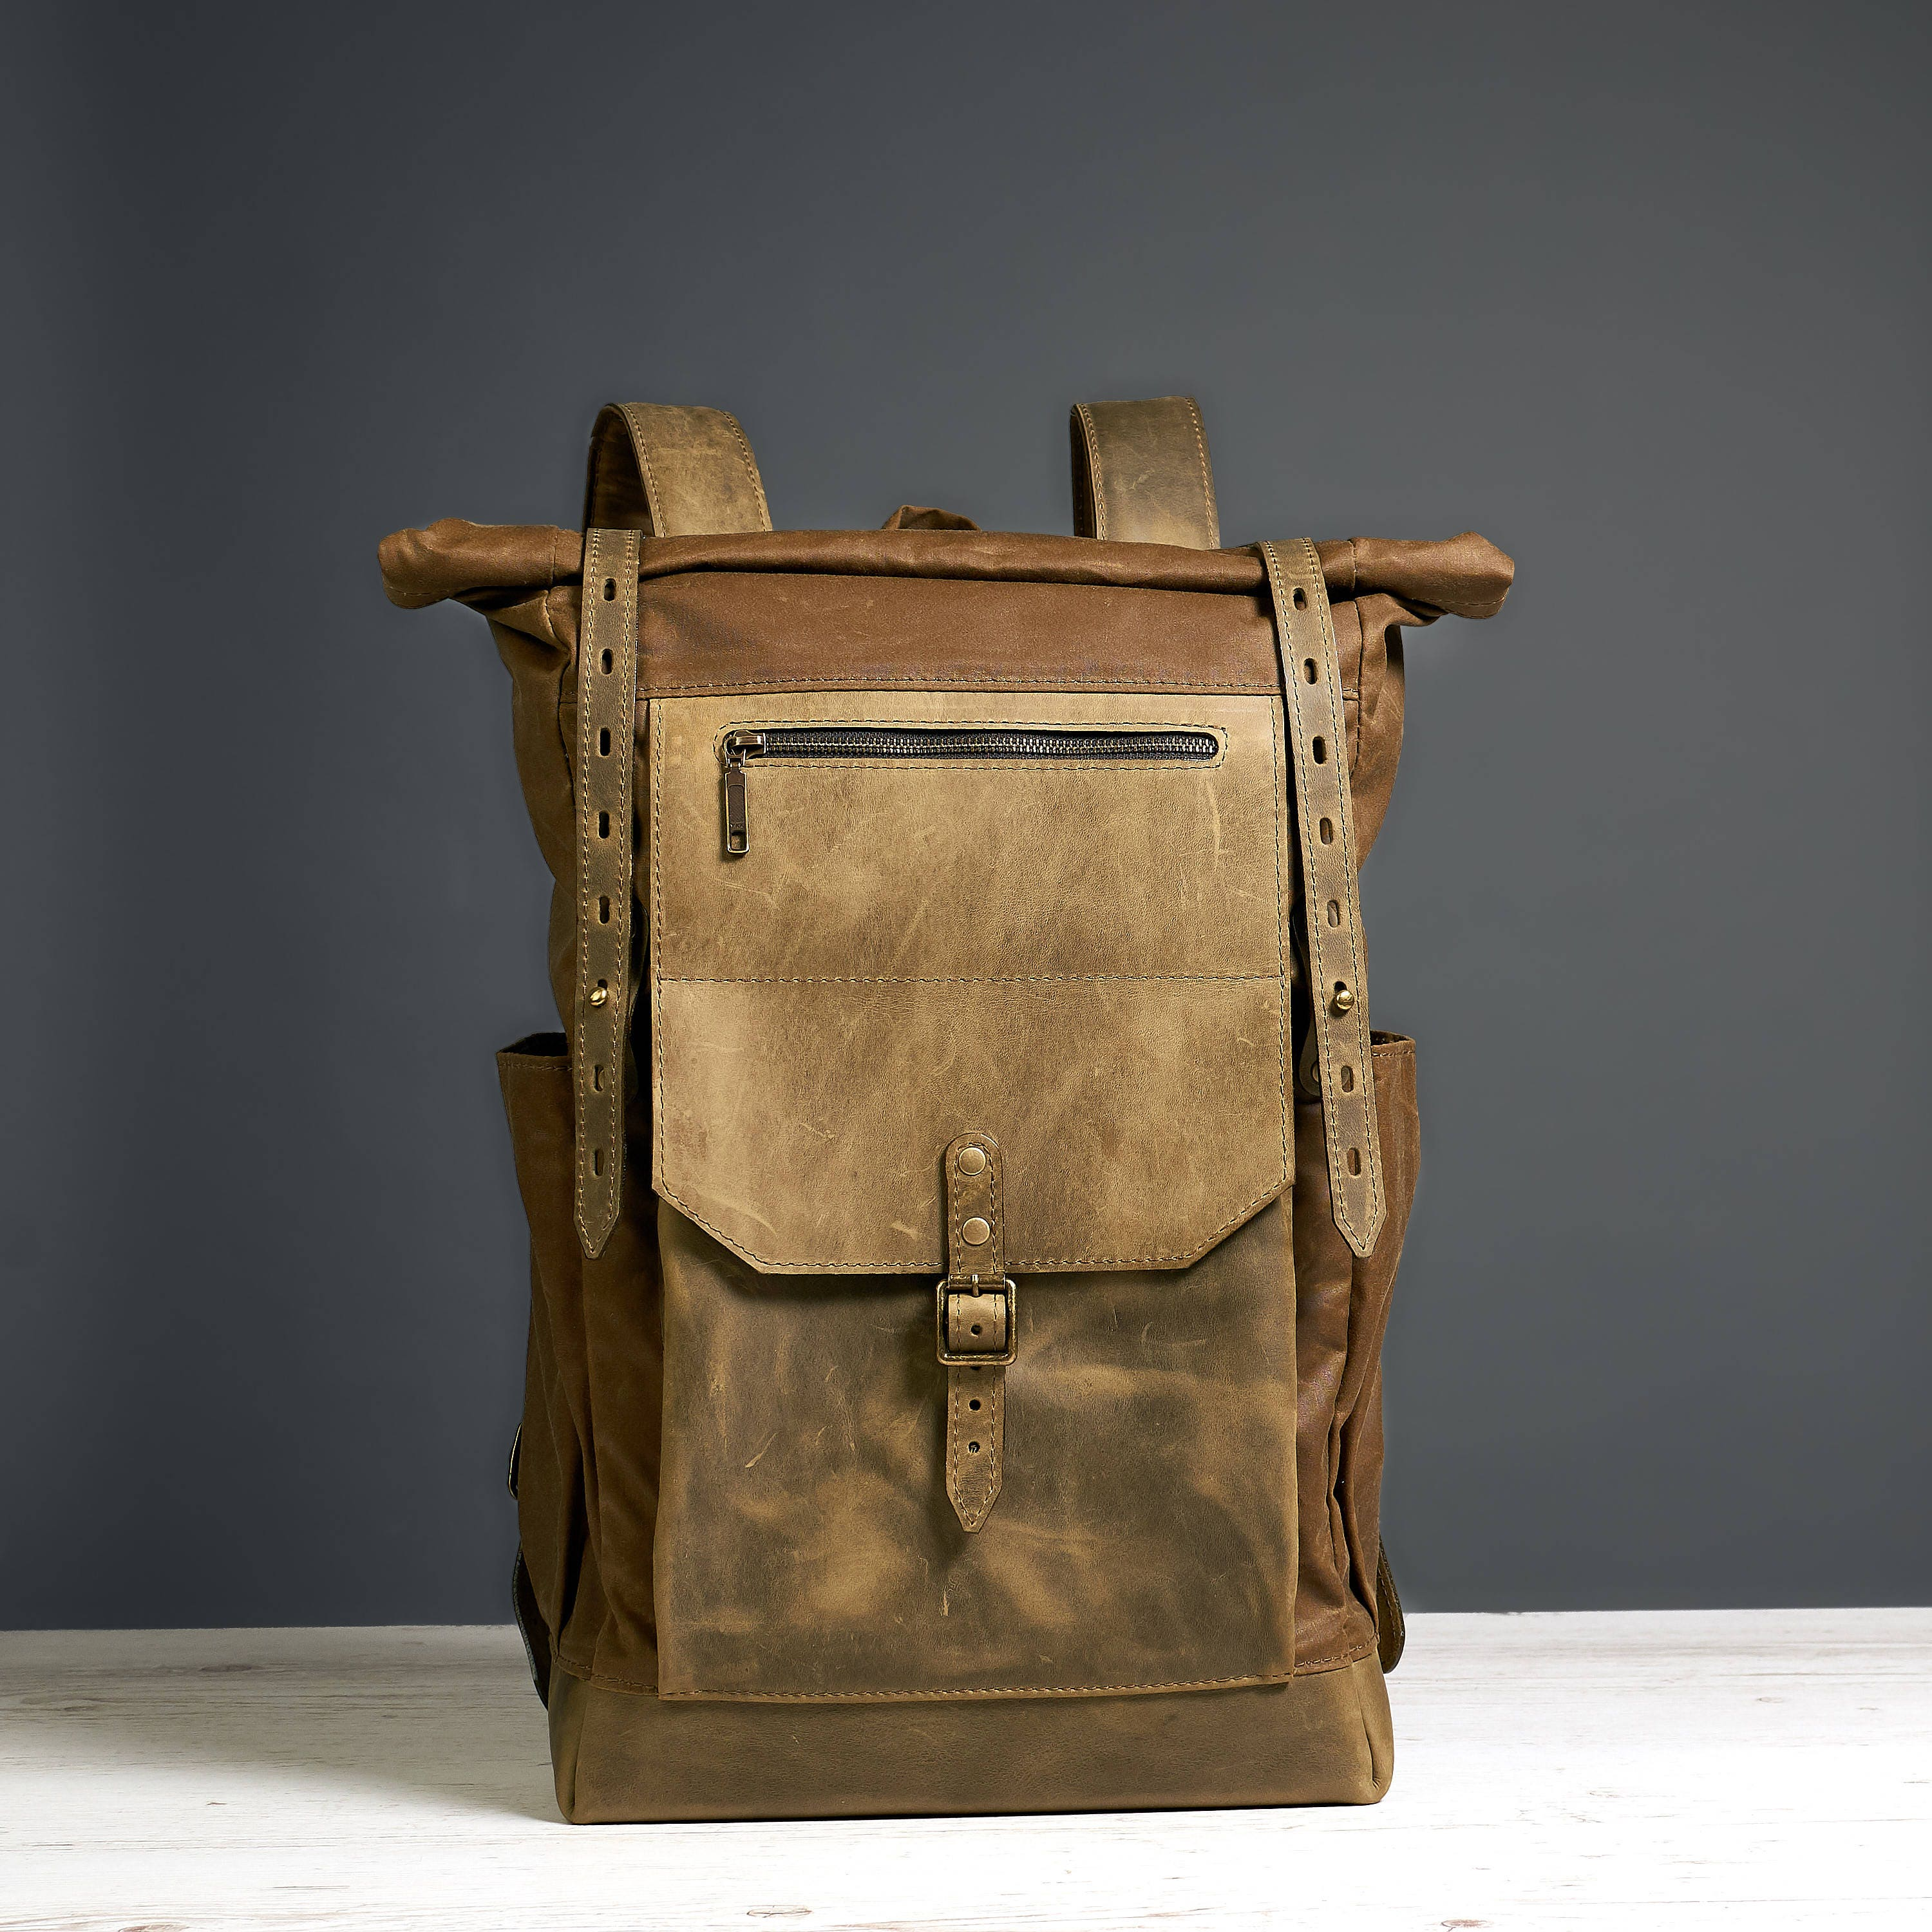 790053826eab REDSWAN Totes Bag Canvas Waxed Canvas Messenger Bag Type Shifting Canvas  Bag Womens Large Waterproof Source · Laptop backpack Waxed canvas and  leather bag ...